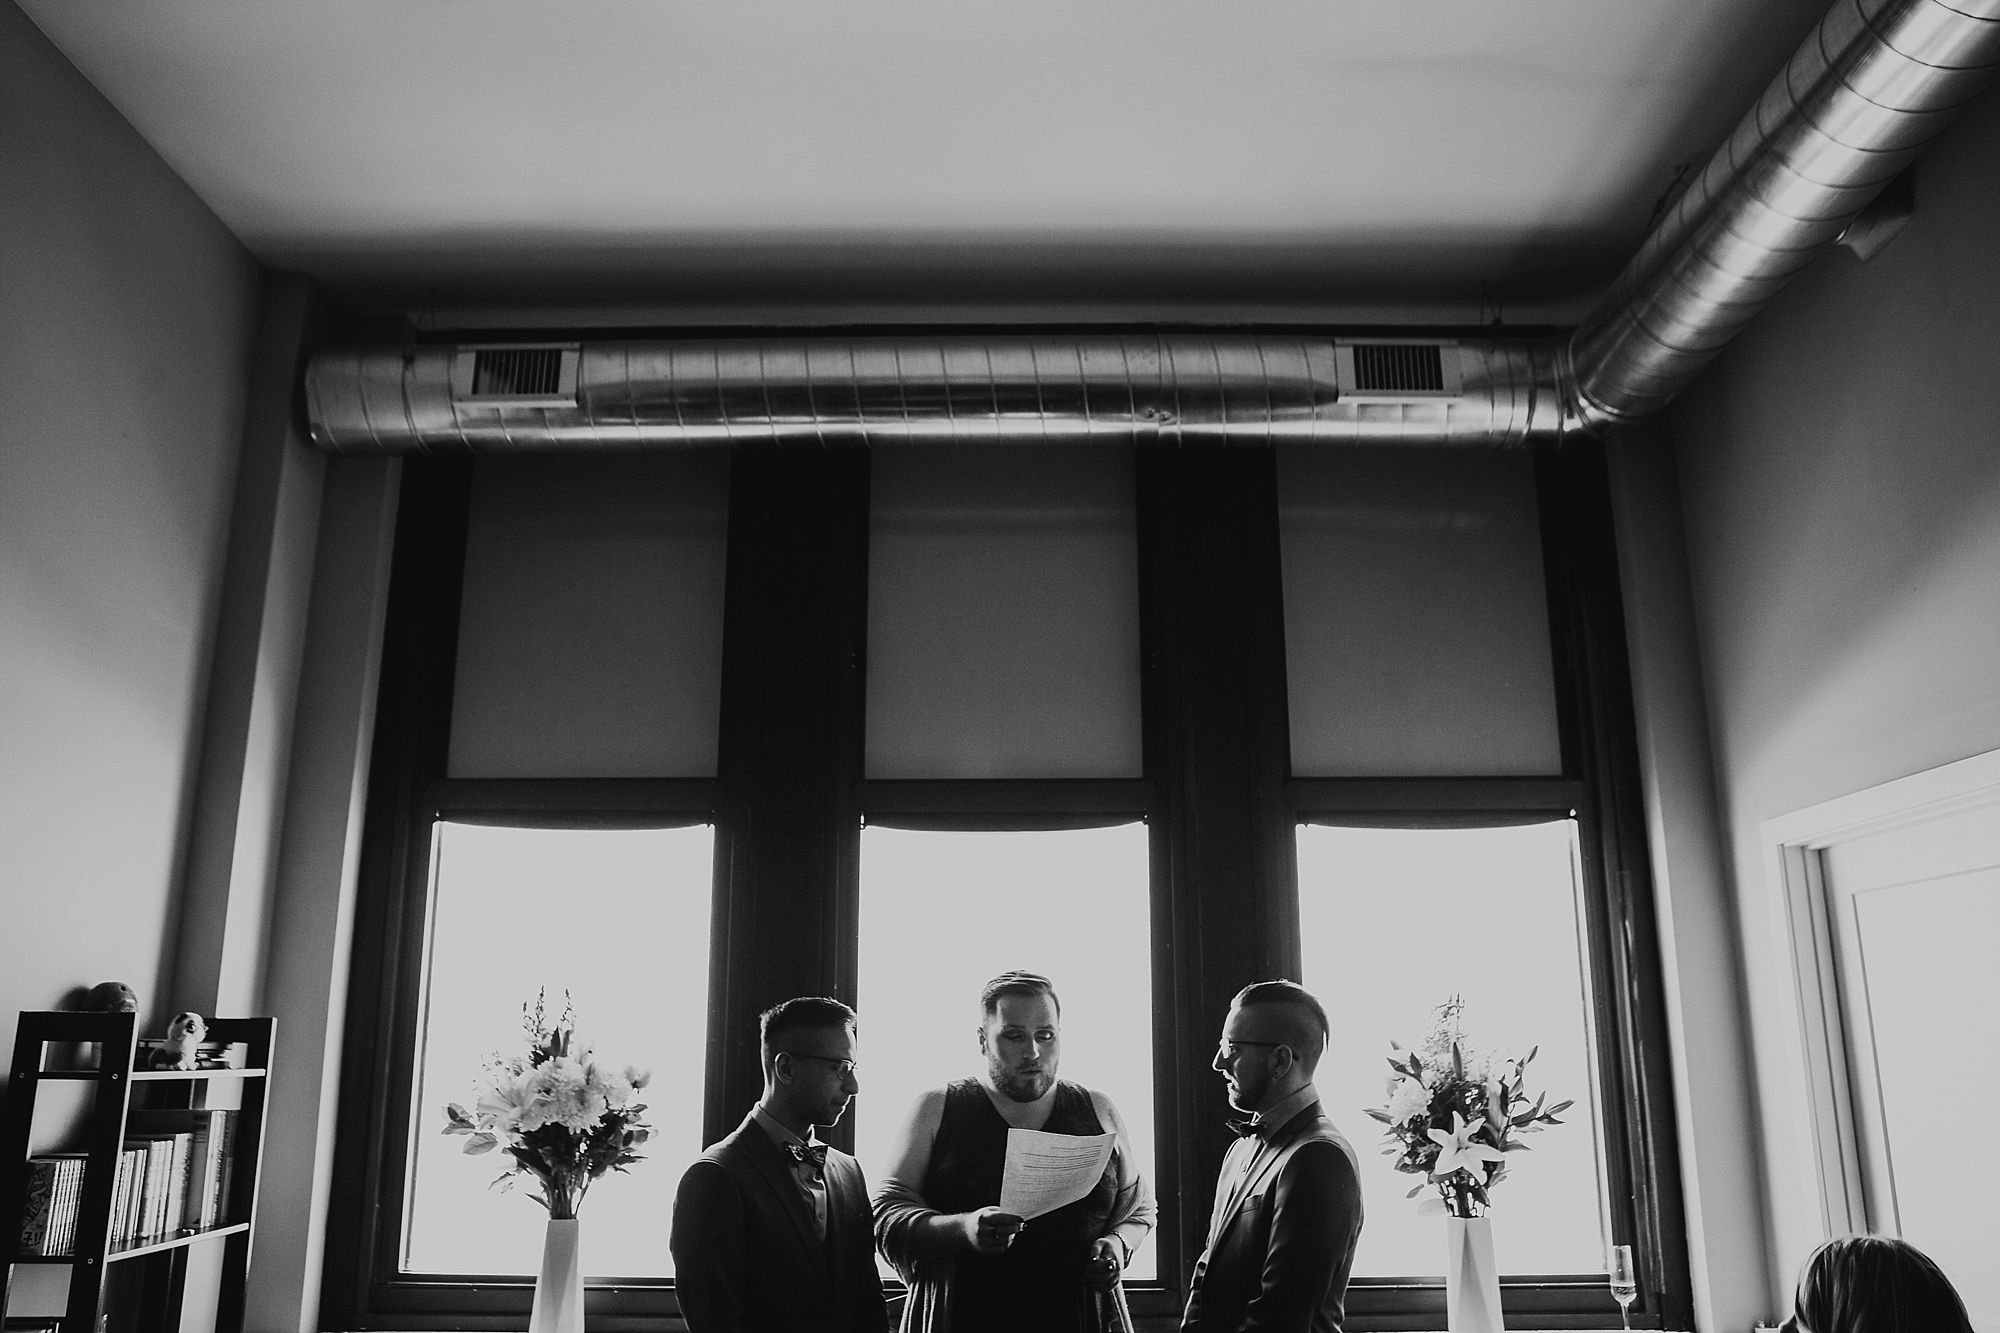 Joe_Mac_Creative_Philadelphia_Philly_LGBT_Gay_Engagement_Wedding_Photography__0060.jpg